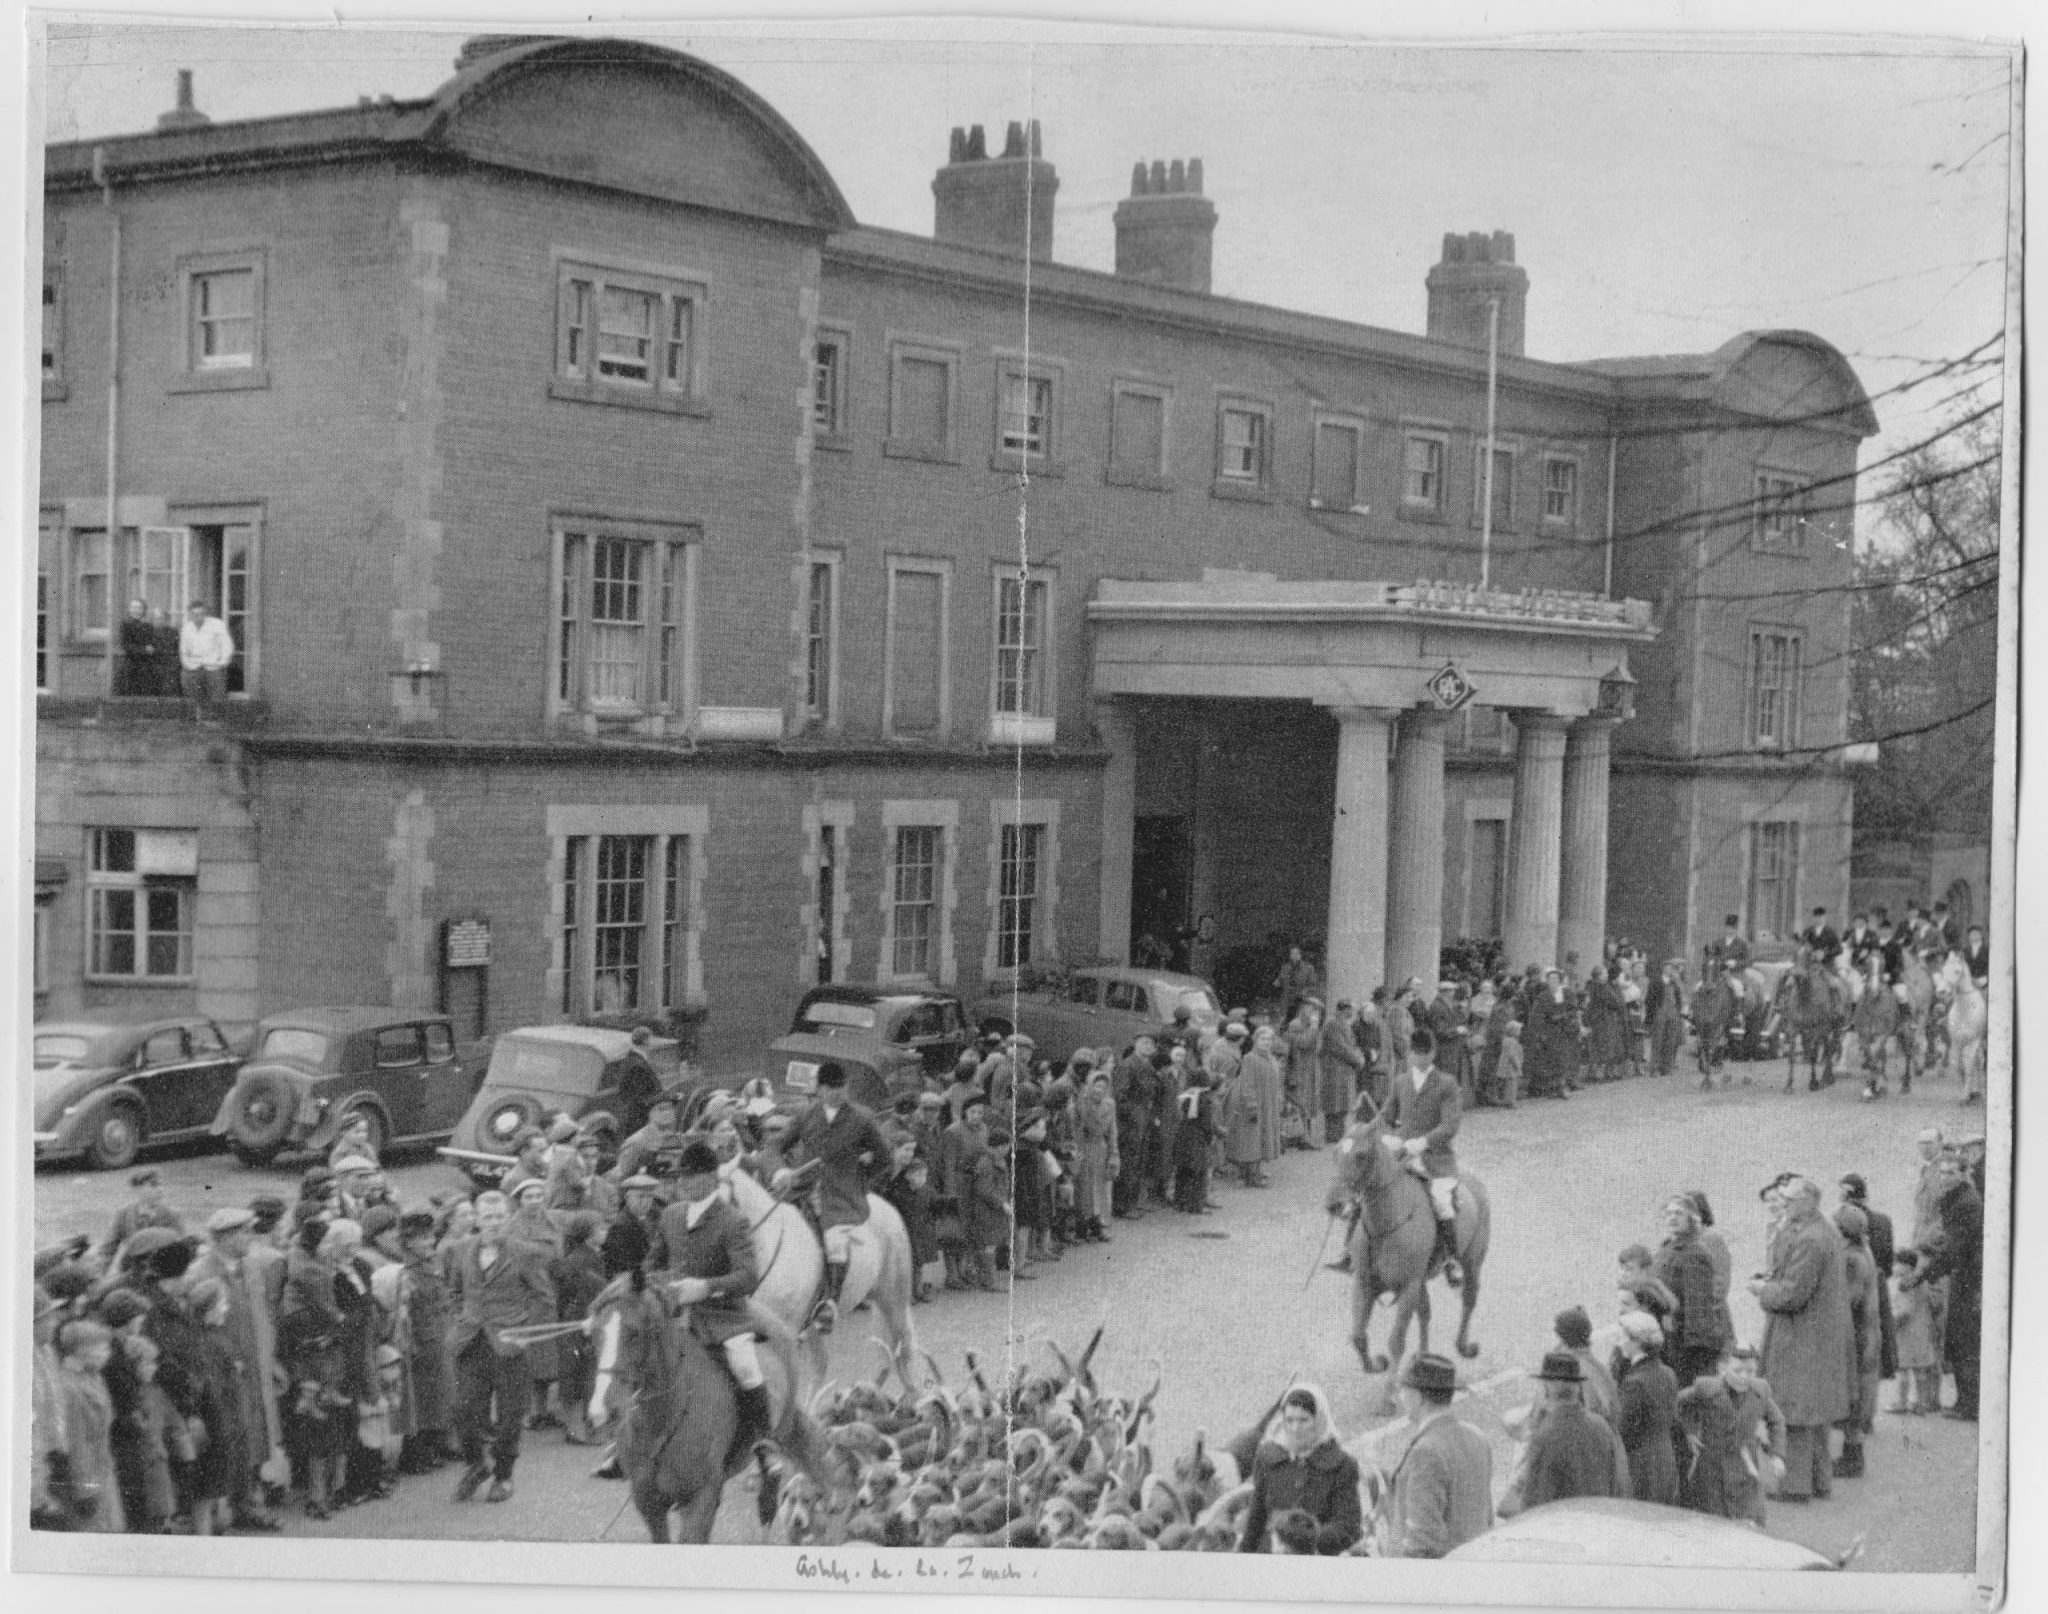 A hunt meeting at Ashby de la Zouche in the 1950s